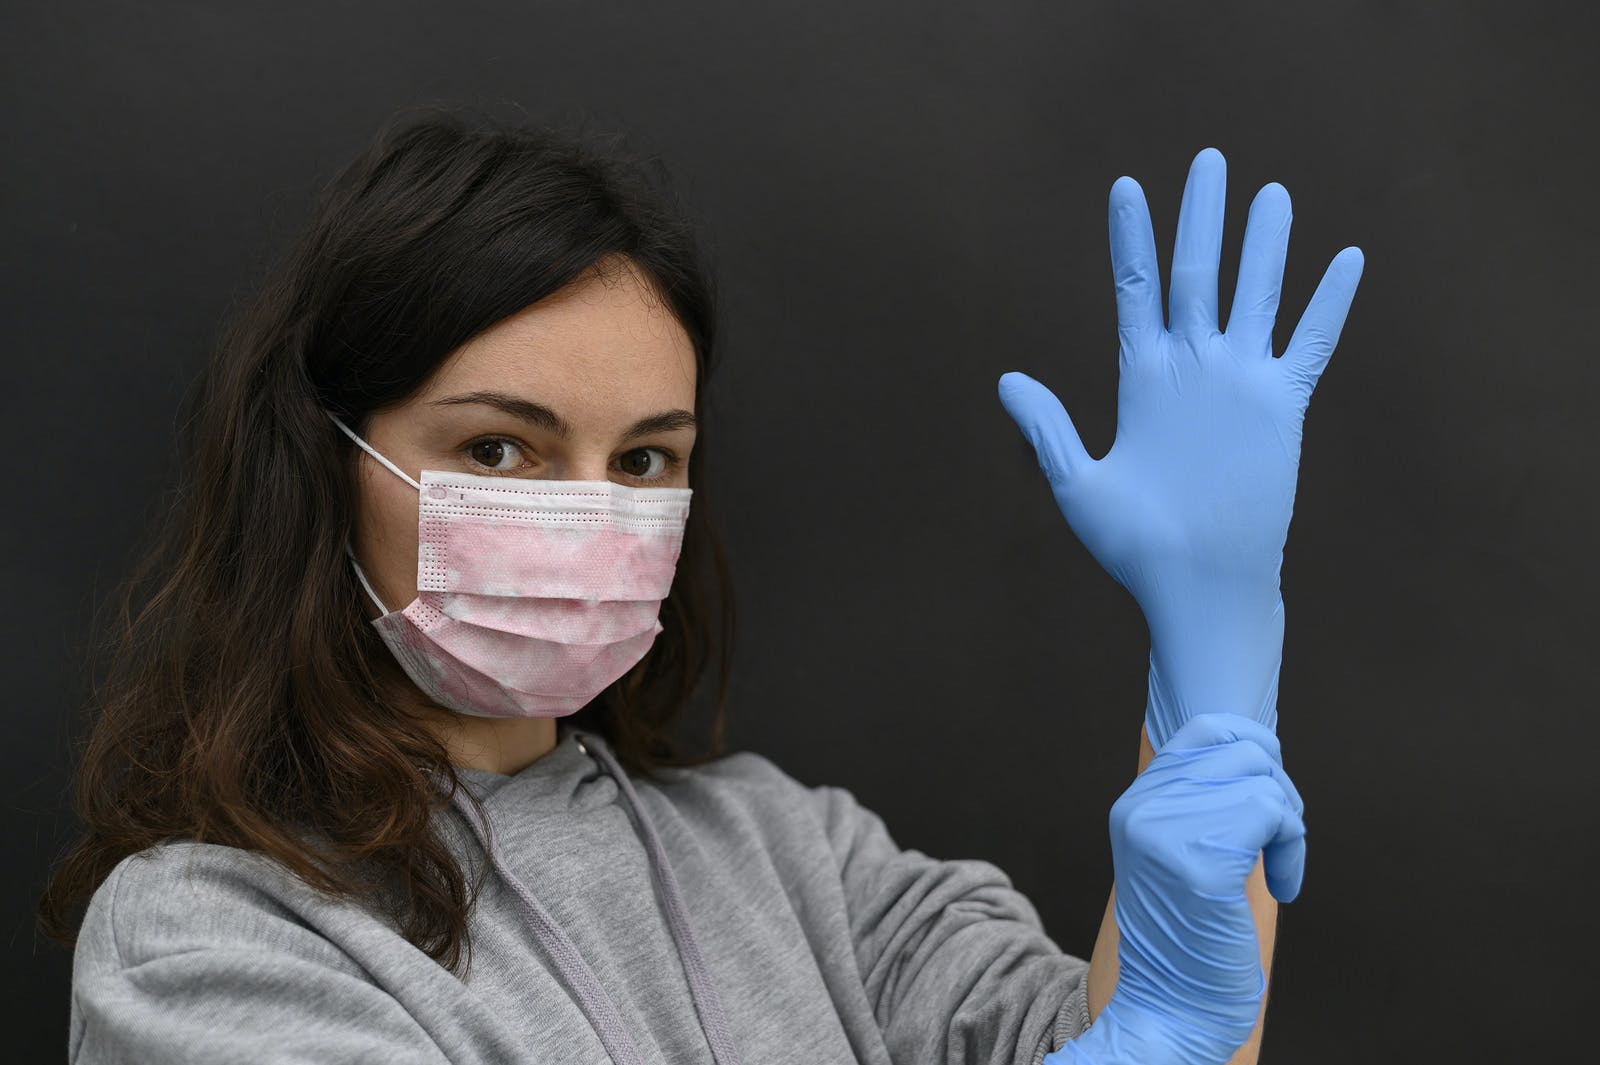 A brunette woman puts on her left hand a blue medical disposable glove. Both hands in gloves. Girl wears a protective mask. A piercing glance at the camera. Remedies for viral infection.